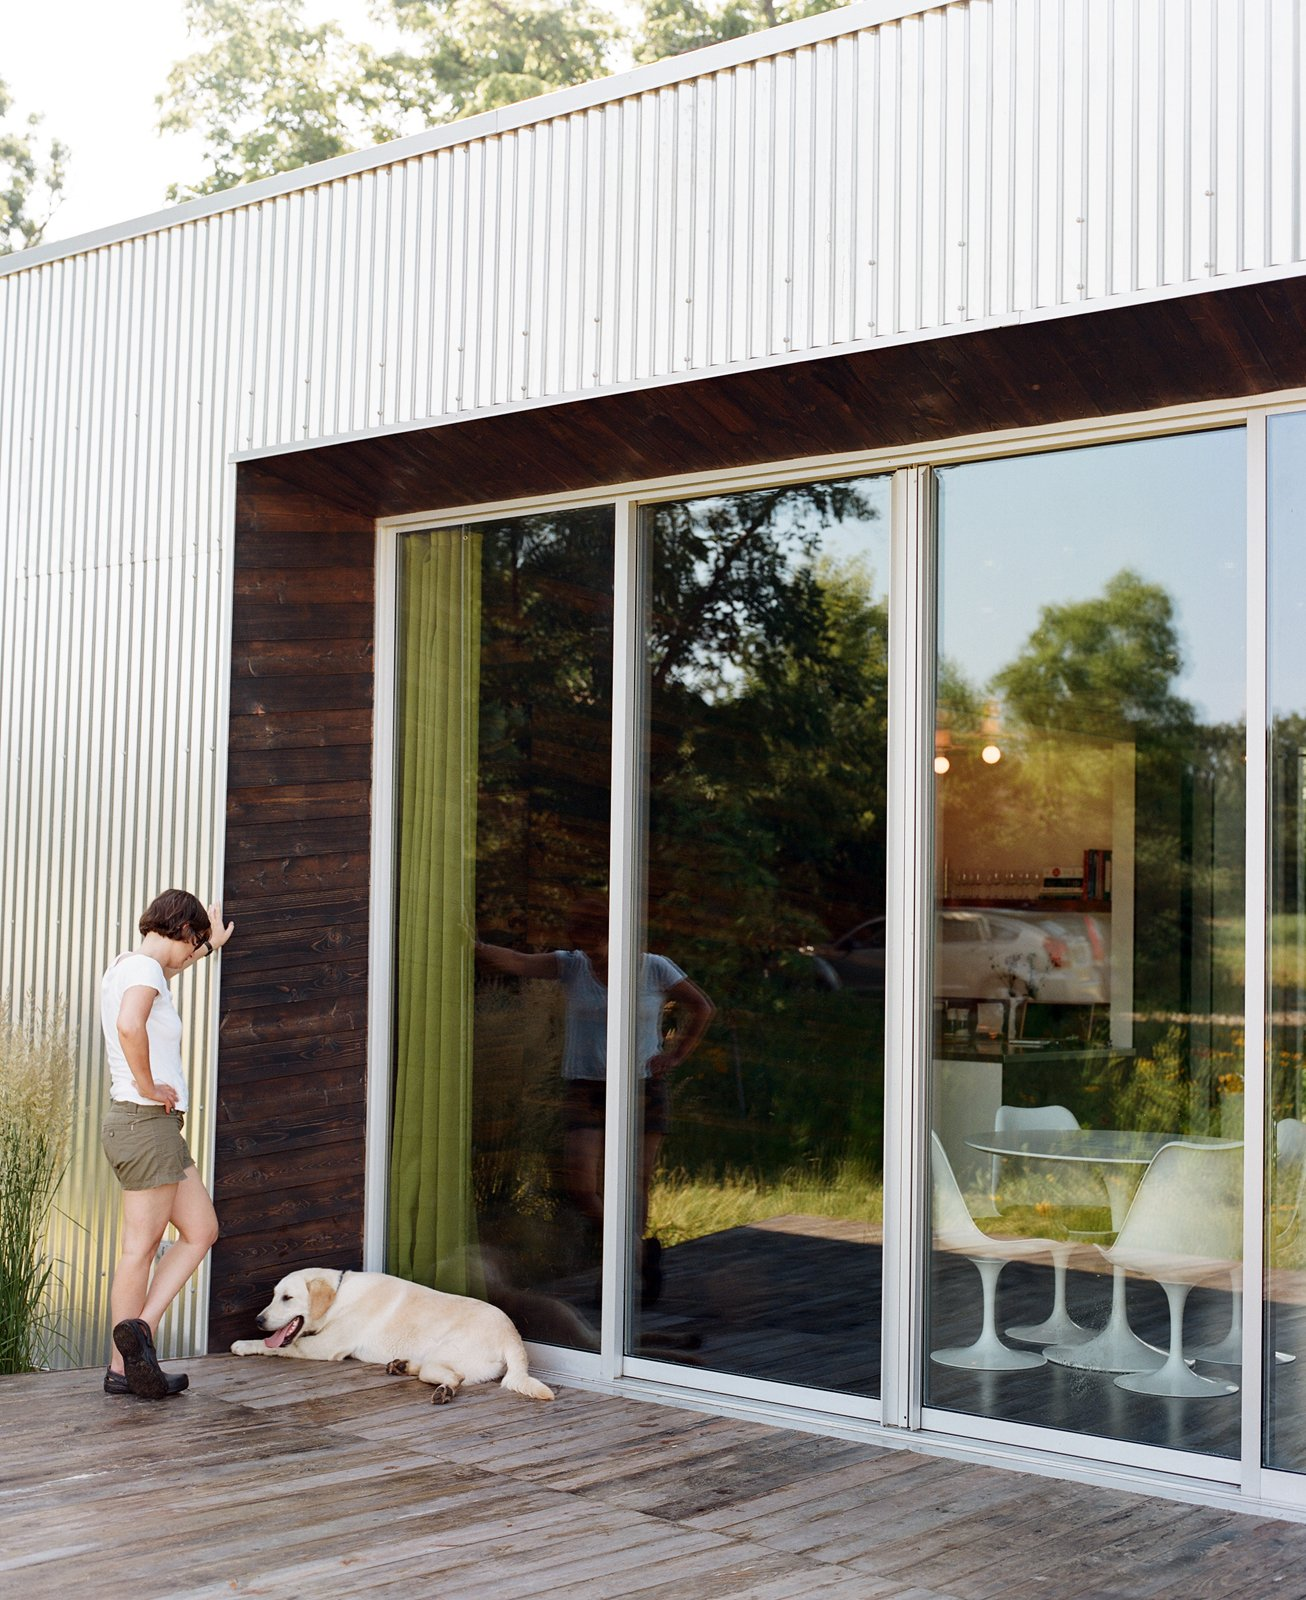 Outdoor and Wood Patio, Porch, Deck Out on the deck, Pascal enjoys some relaxed time with their dog, taking a breather in a bit of shade while sun streams across the meadow.  Photo 11 of 25 in Leap Into the Year of the Dog With These 25 Pups in the Modern World from How To: Inviting Front Doors for Modern Homes